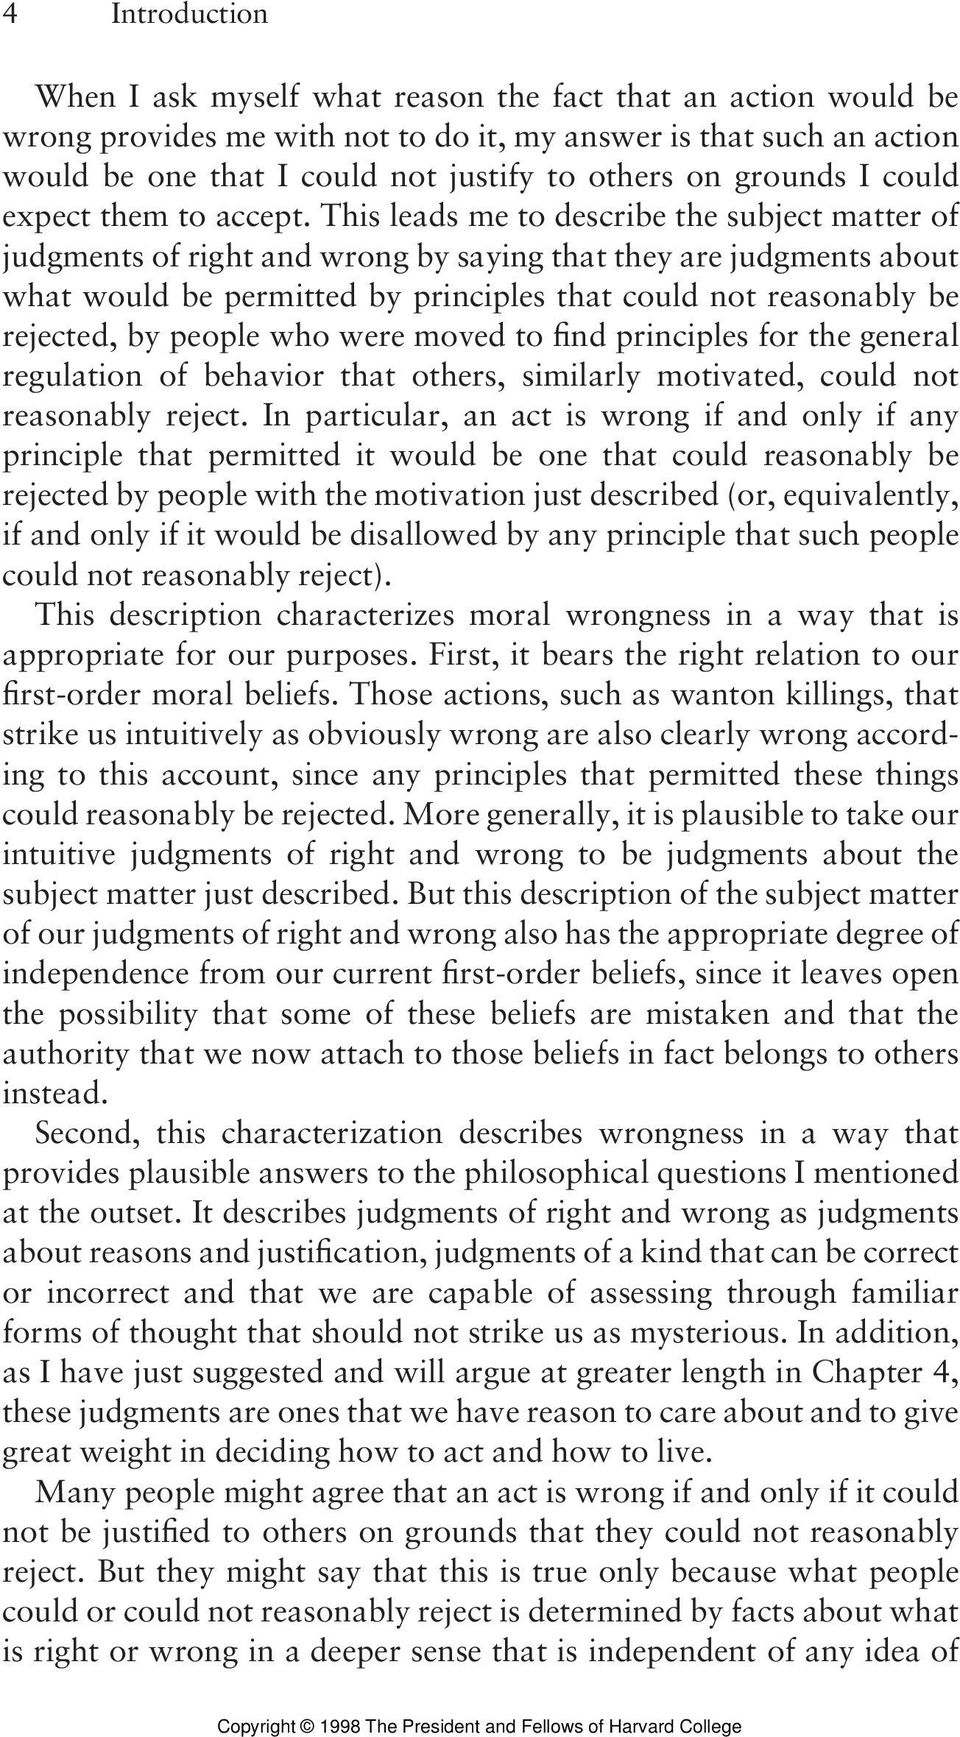 This leads me to describe the subject matter of judgments of right and wrong by saying that they are judgments about what would be permitted by principles that could not reasonably be rejected, by